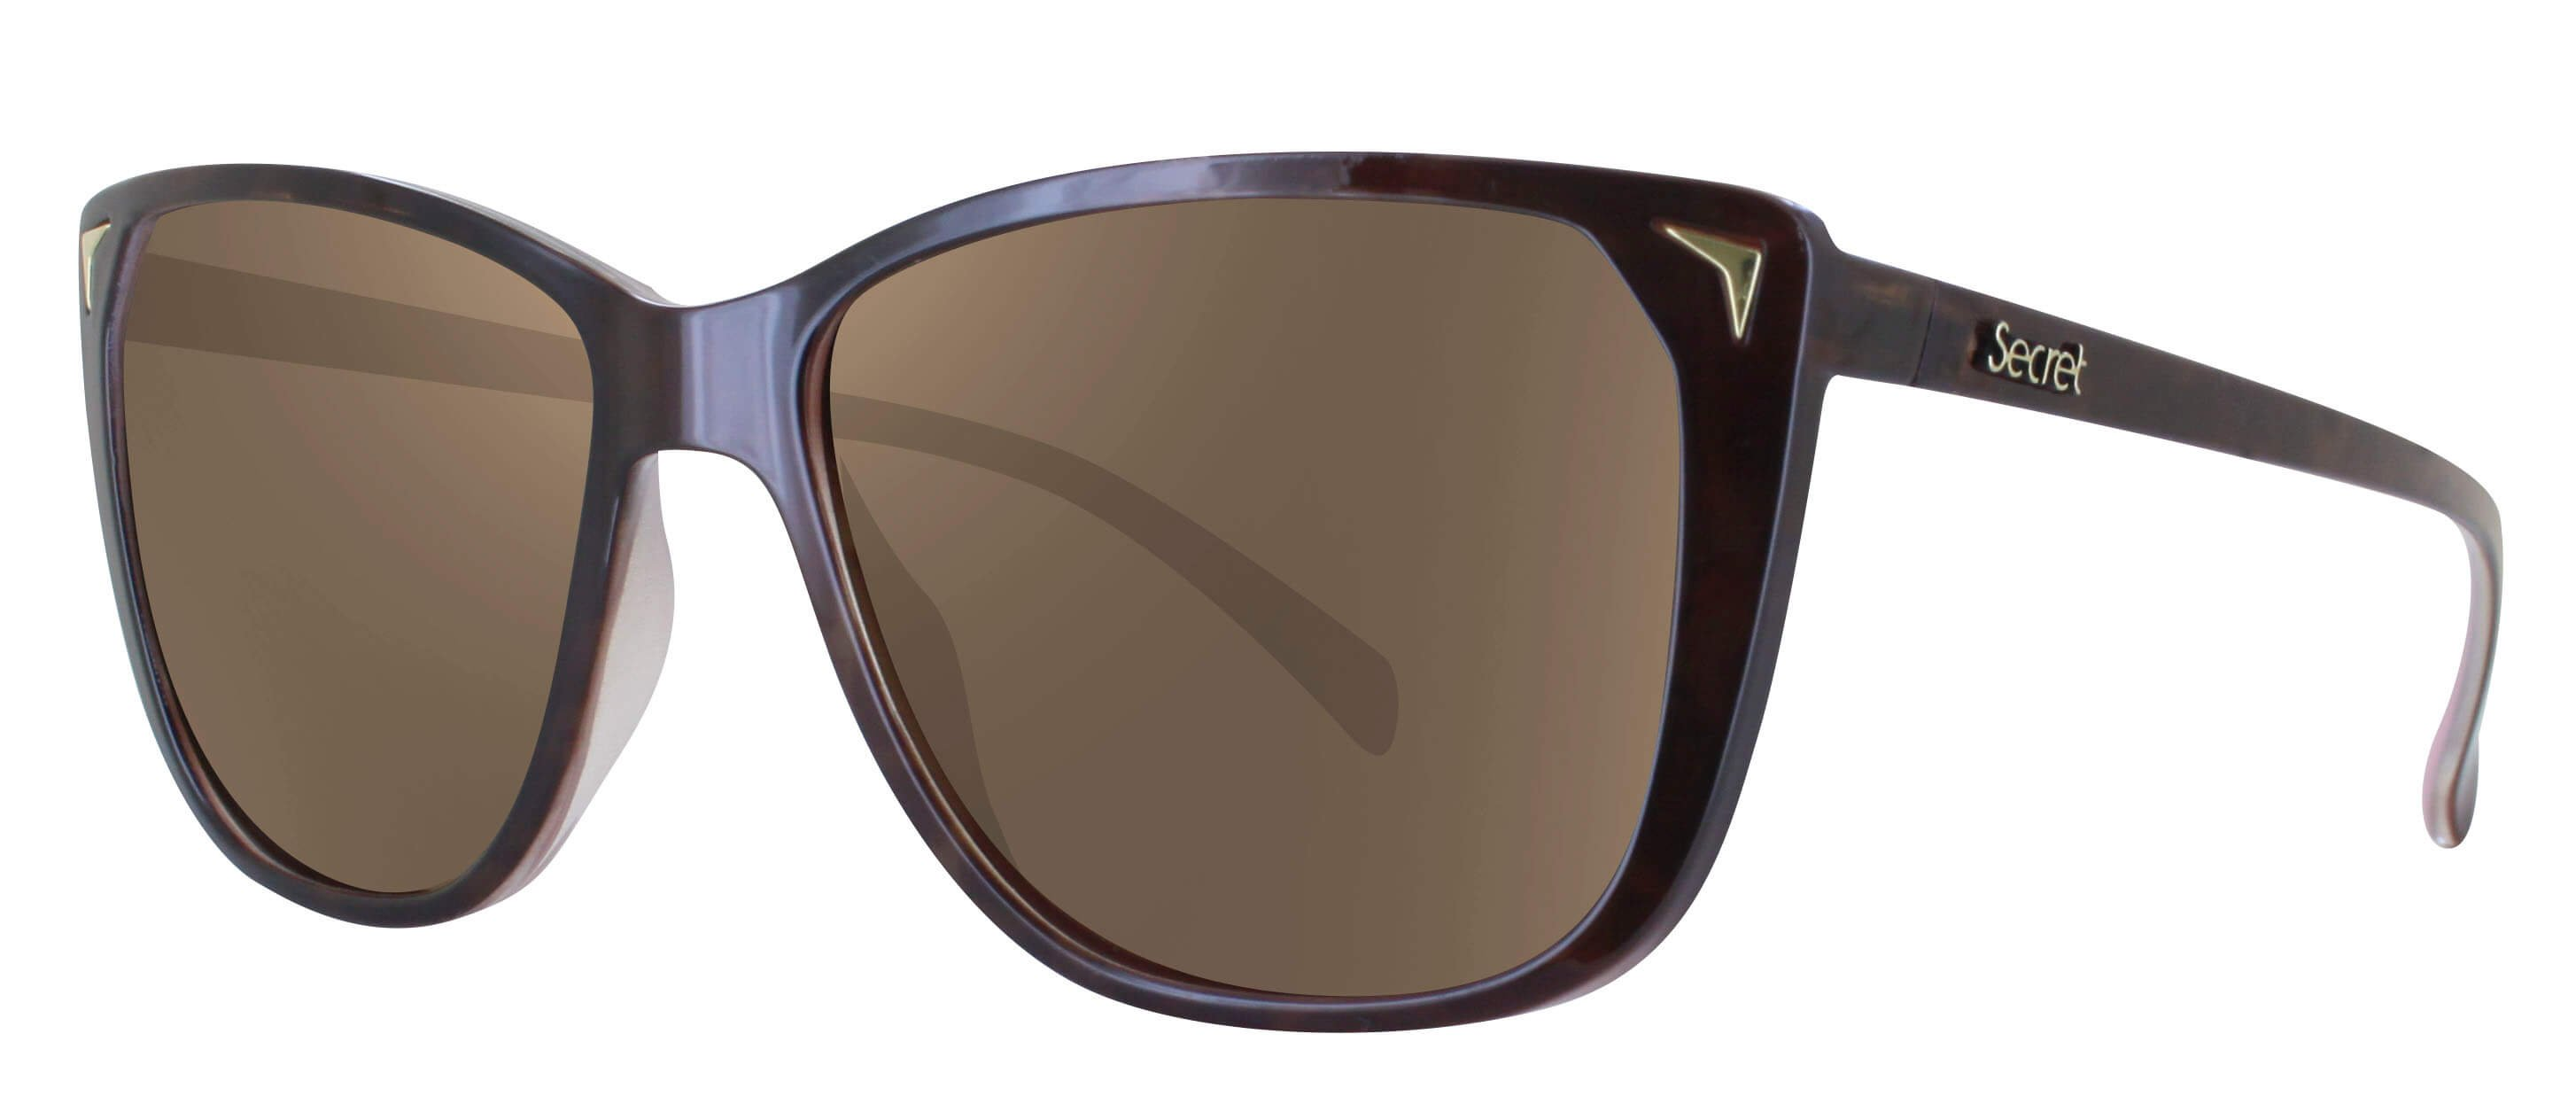 ÓC SECRET LOVEFOOL R.ROSE NEW TURTLE / POLARIZED BROWN